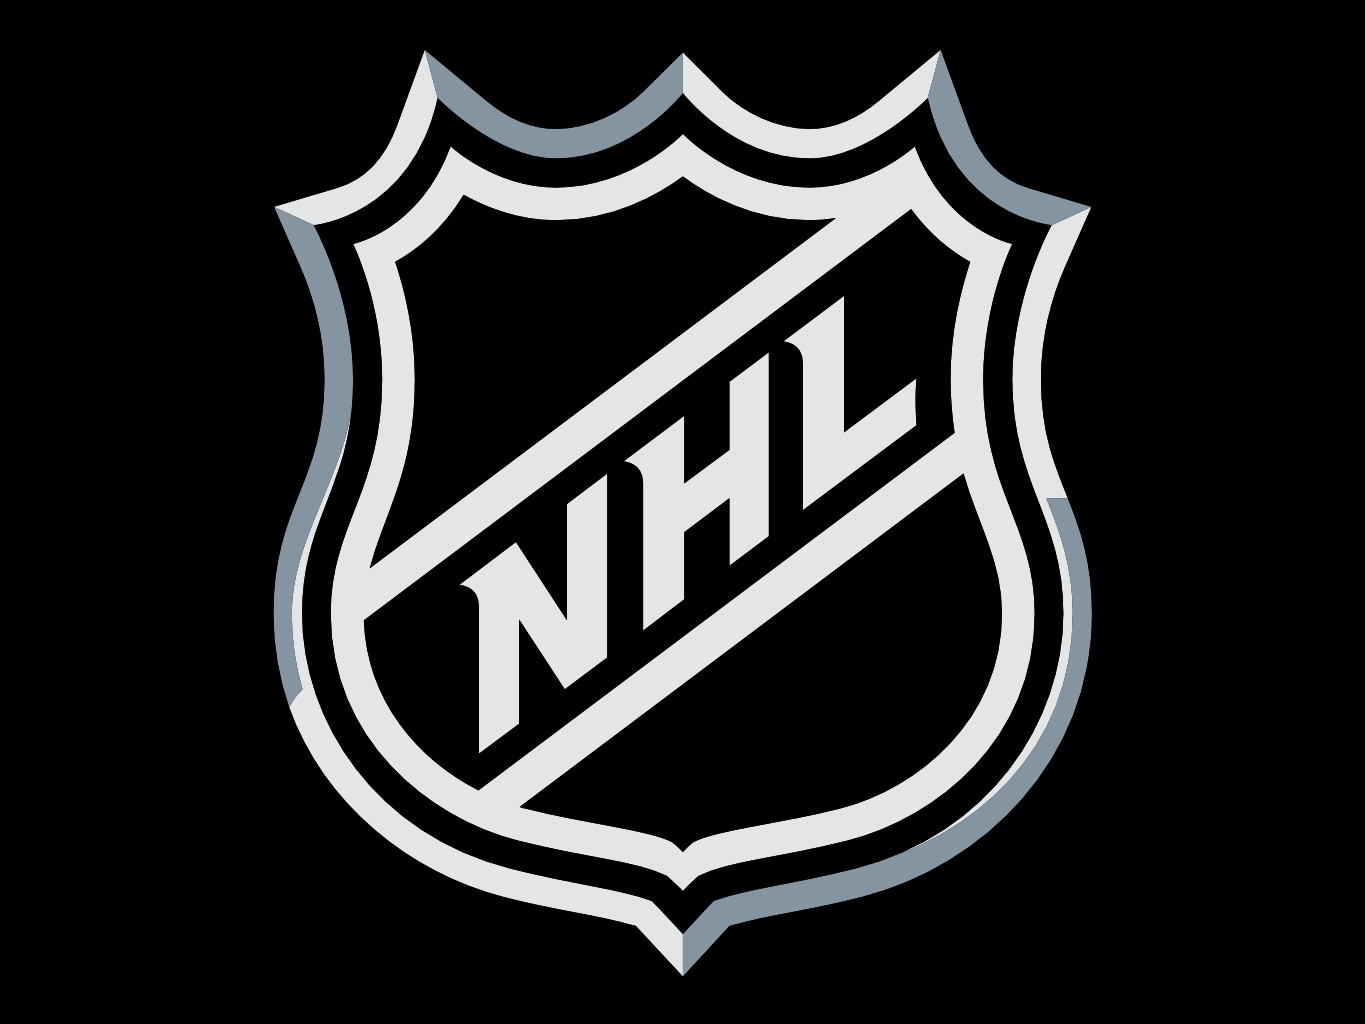 Download wallpaper NHL logo wallpaper download 1365x1024